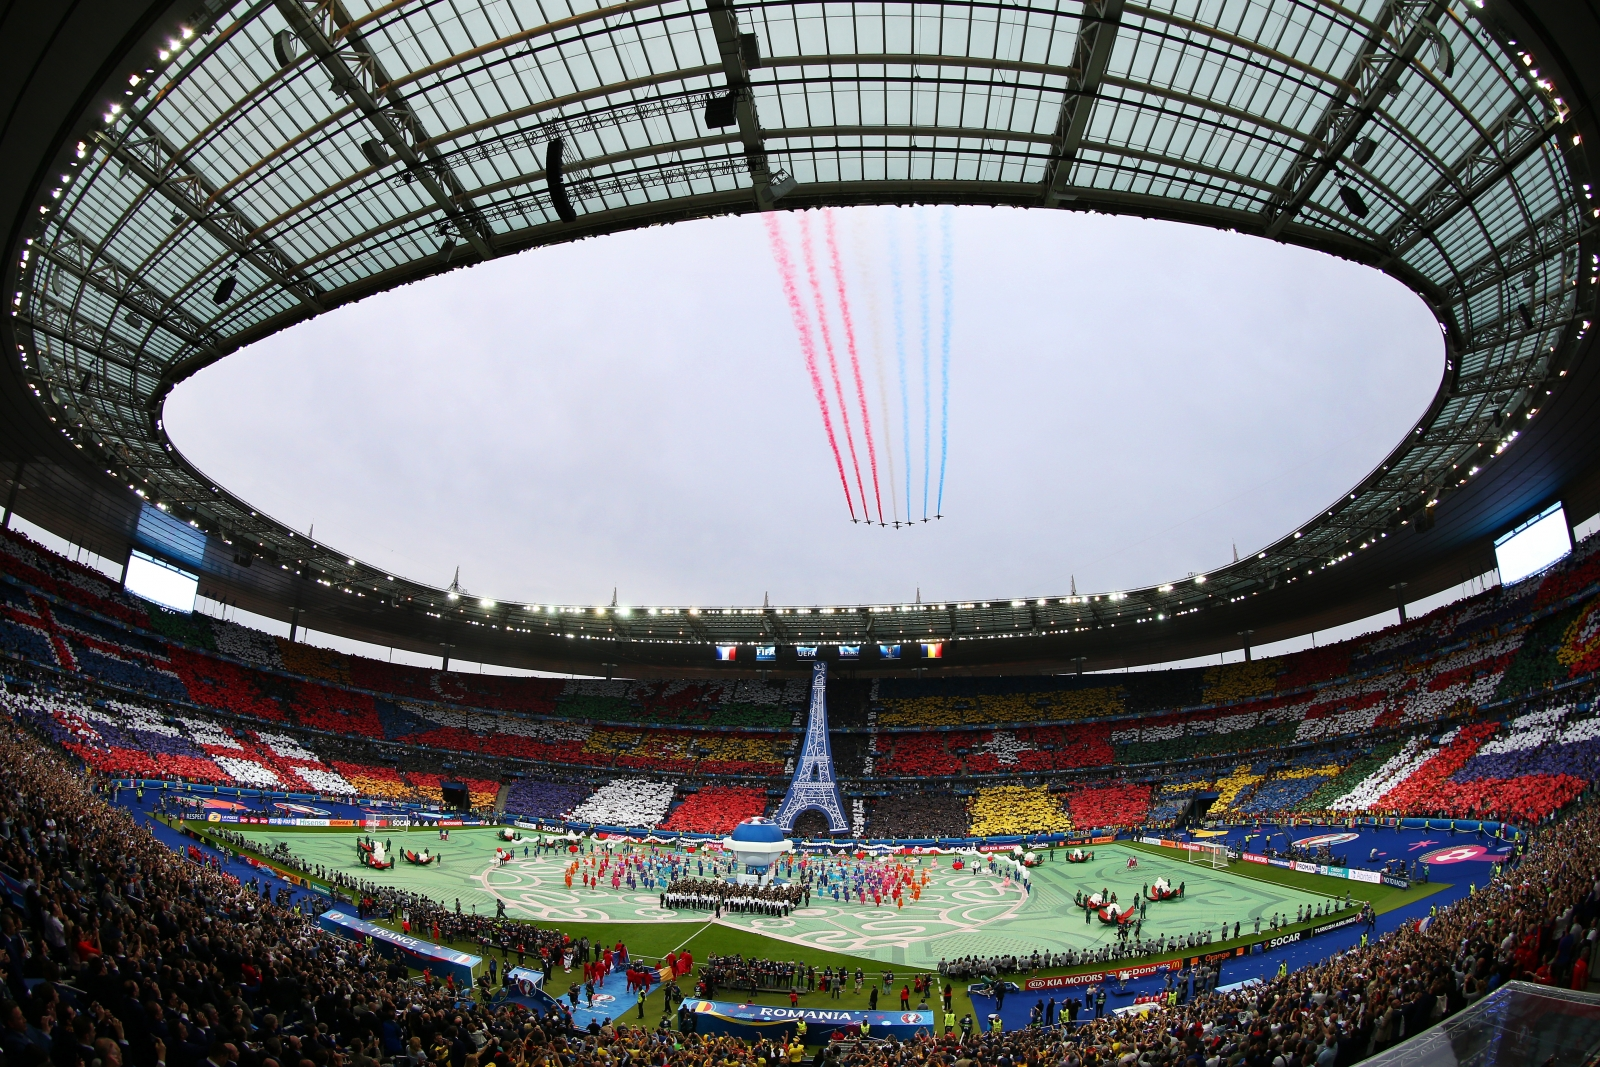 The Stade de France before kick off